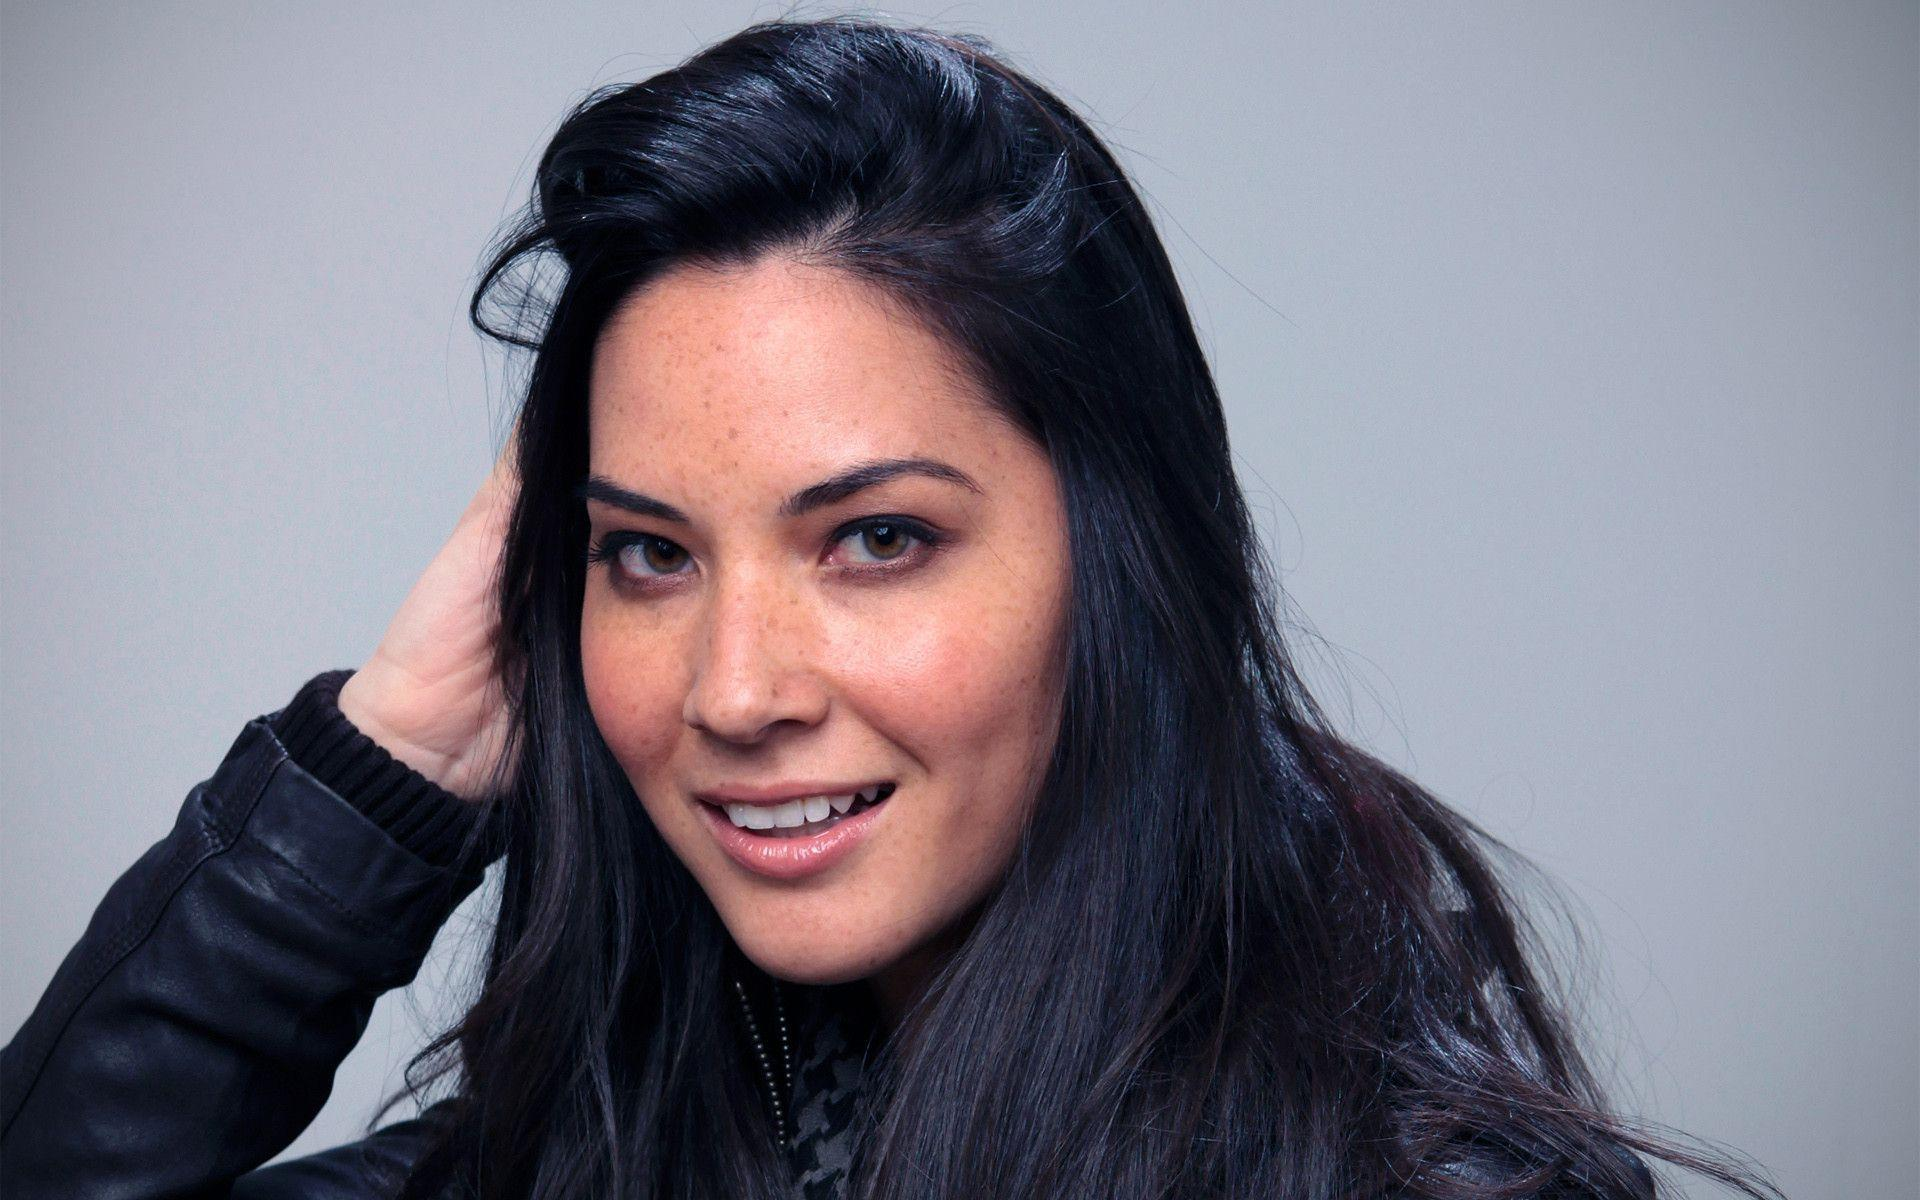 Image For > Olivia Munn Wallpapers